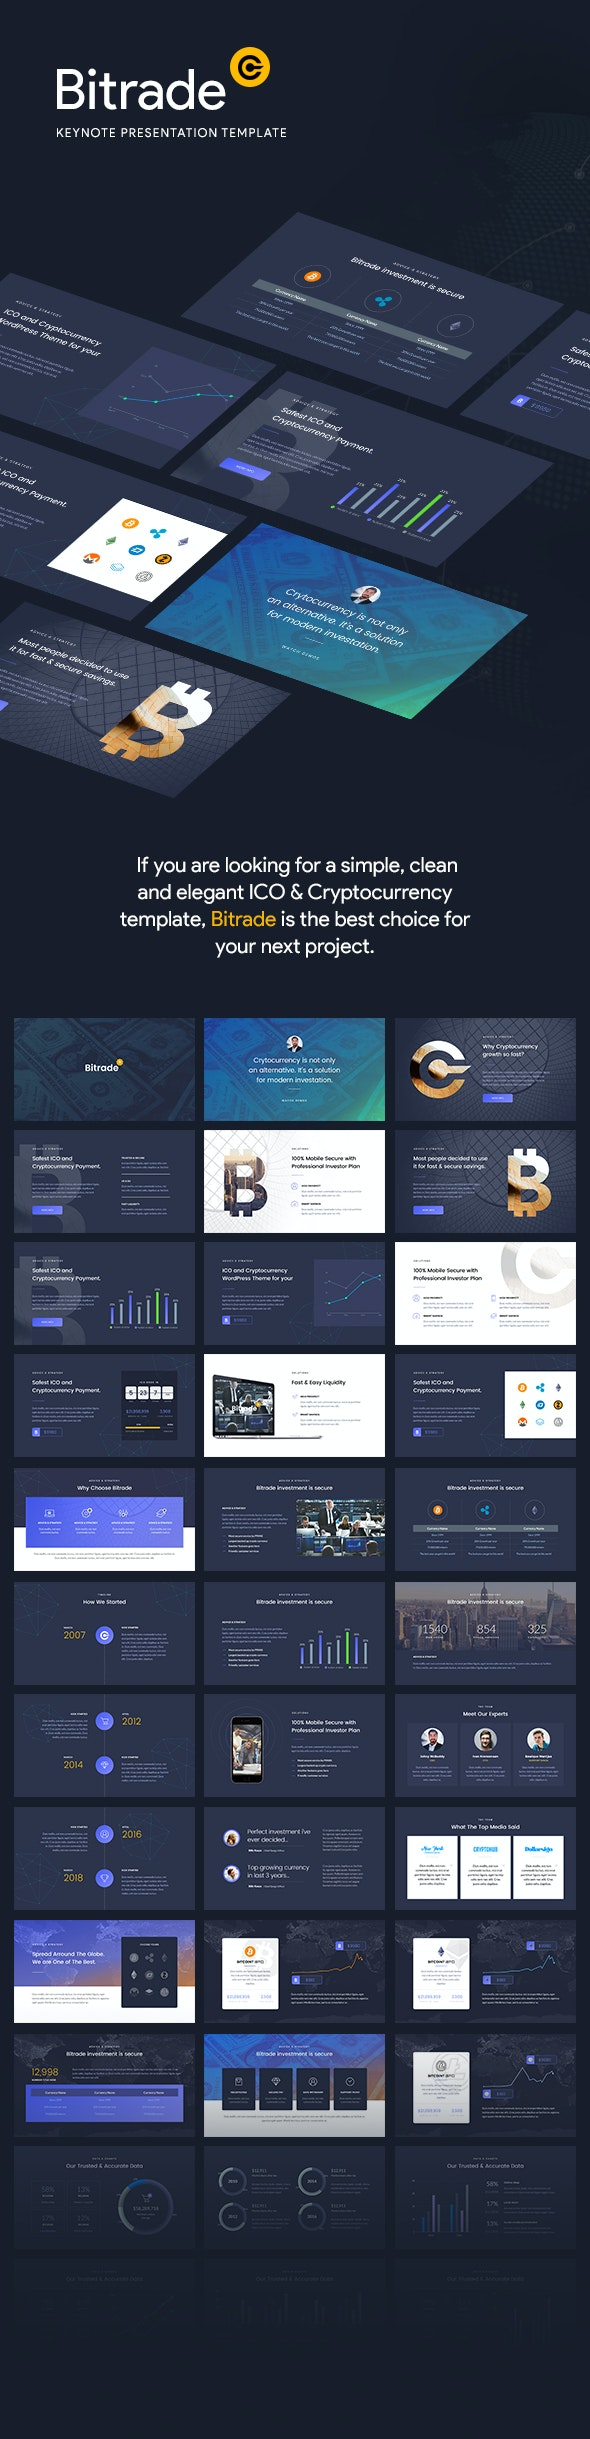 Cryptocurrency - Keynote Template Presentation - Keynote Templates Presentation Templates